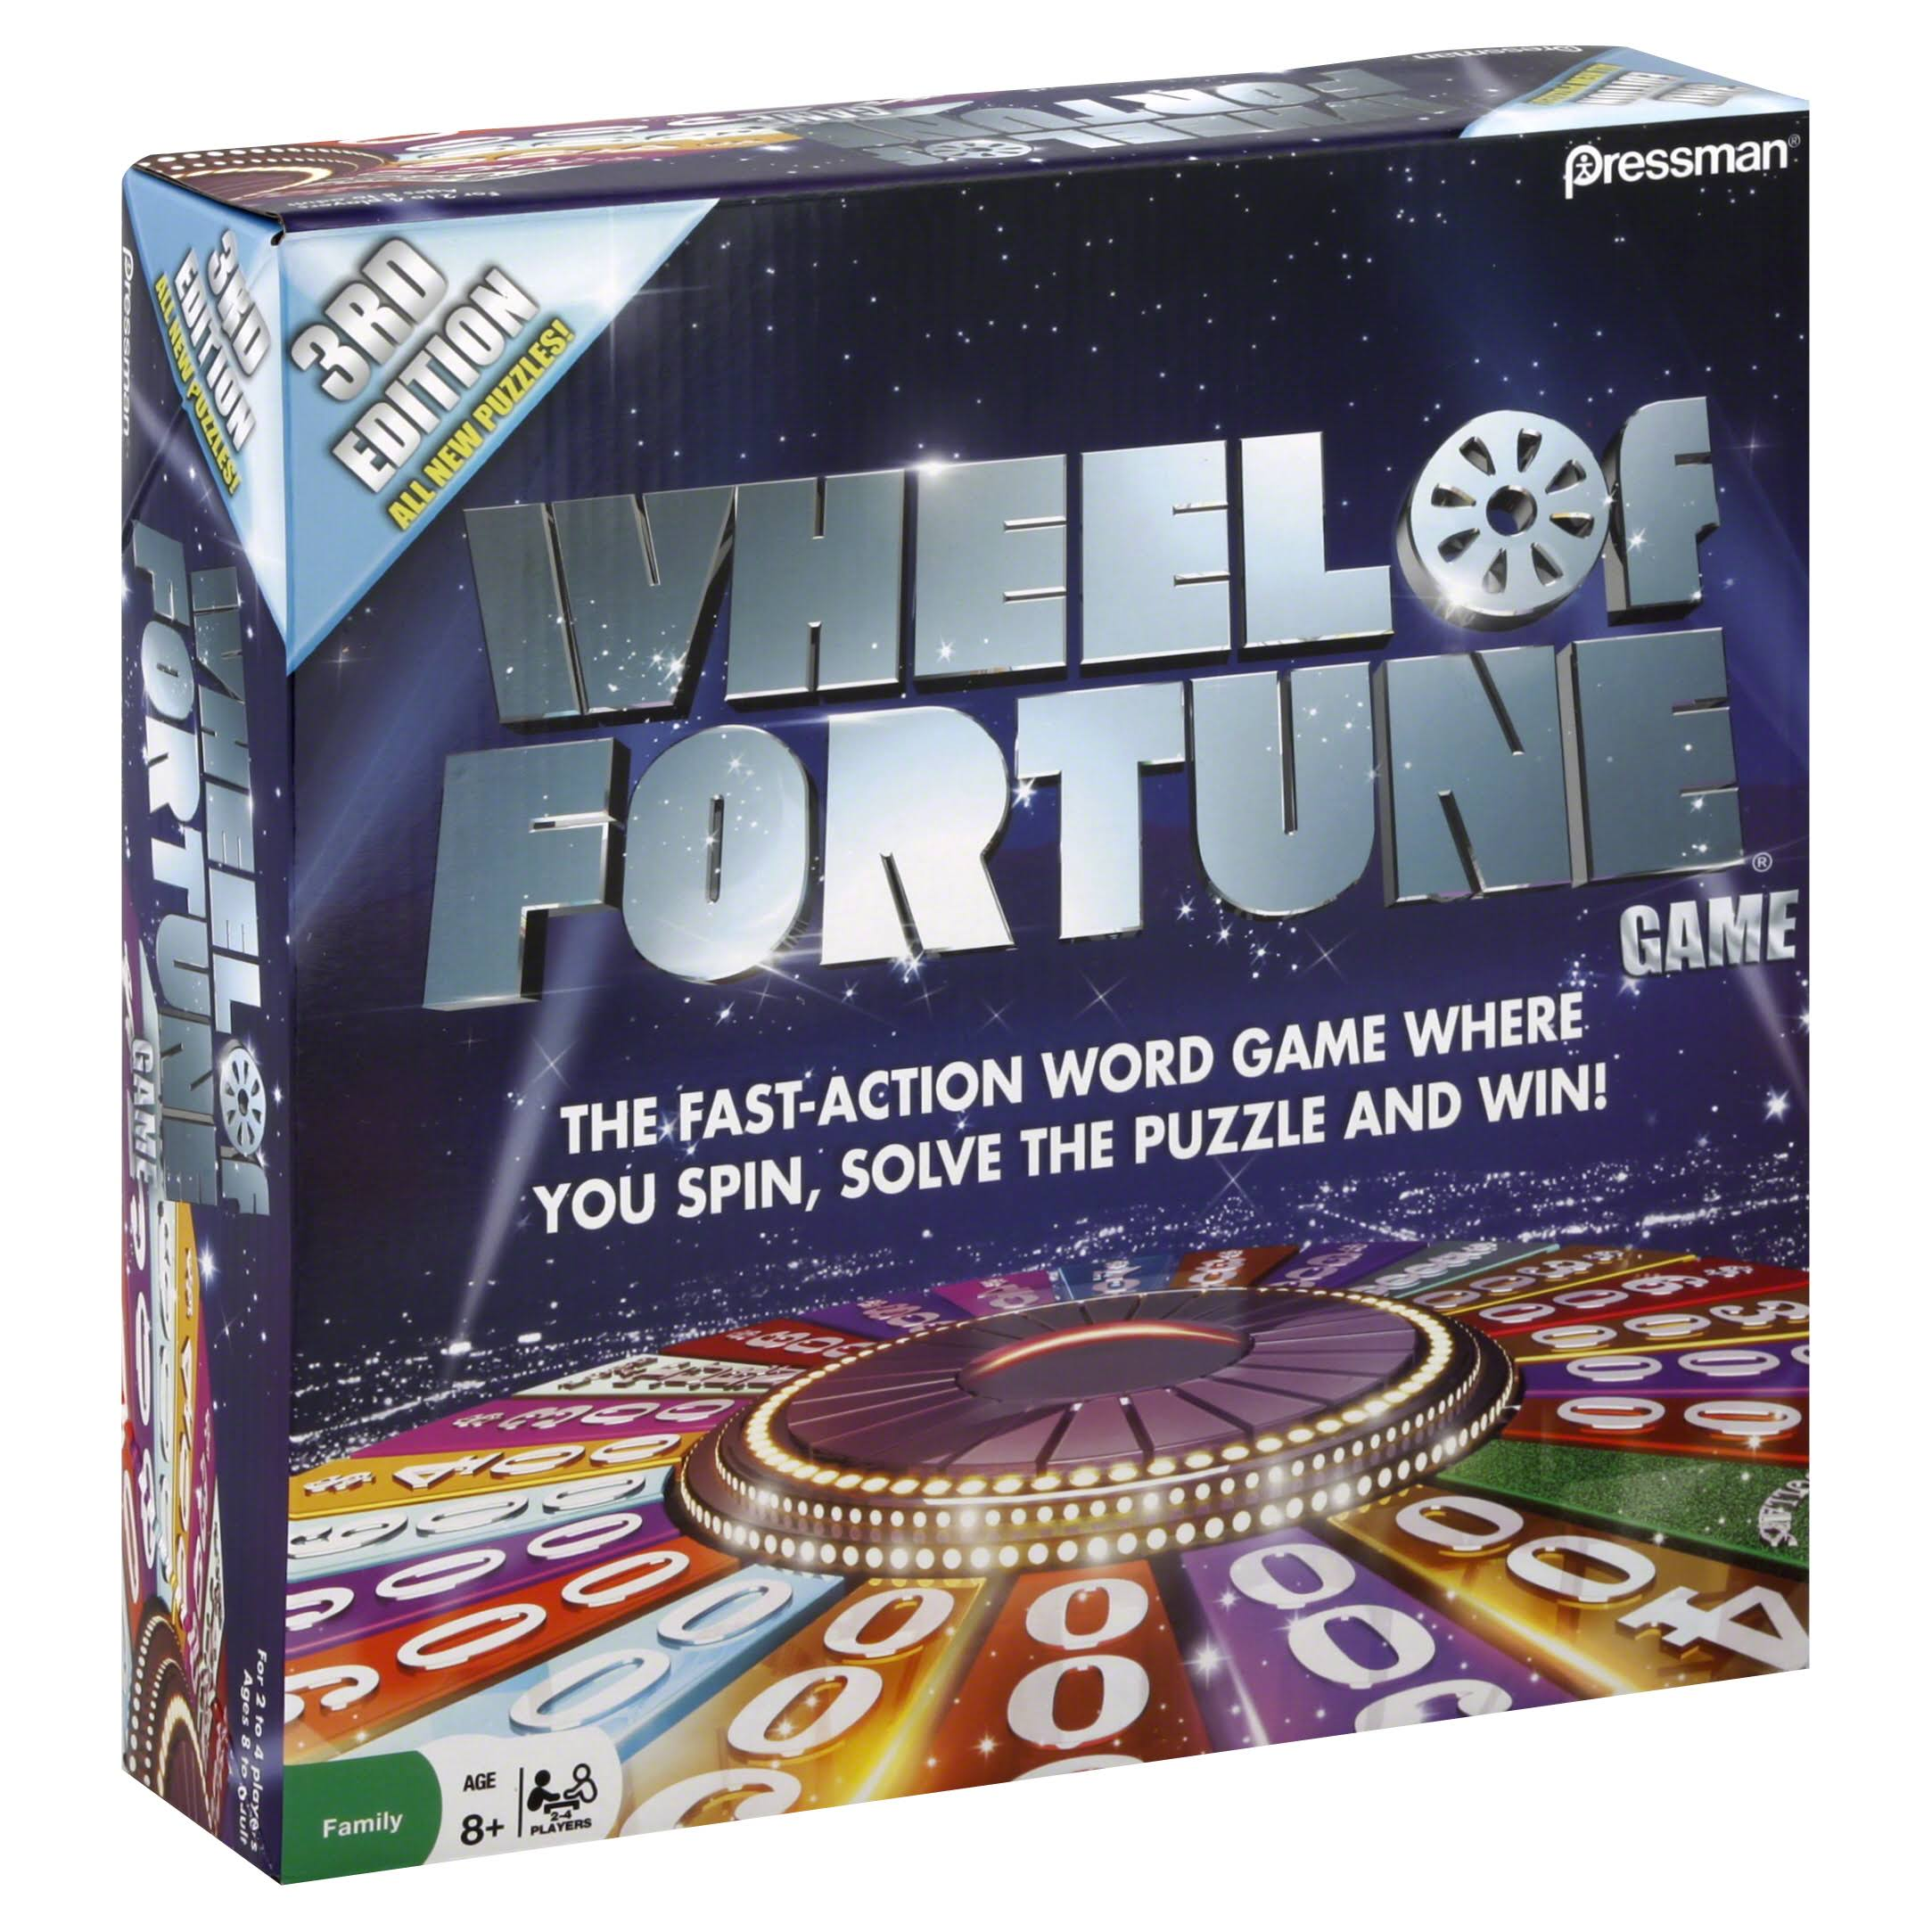 Pressman Toy Wheel of Fortune Game - 3rd Edition